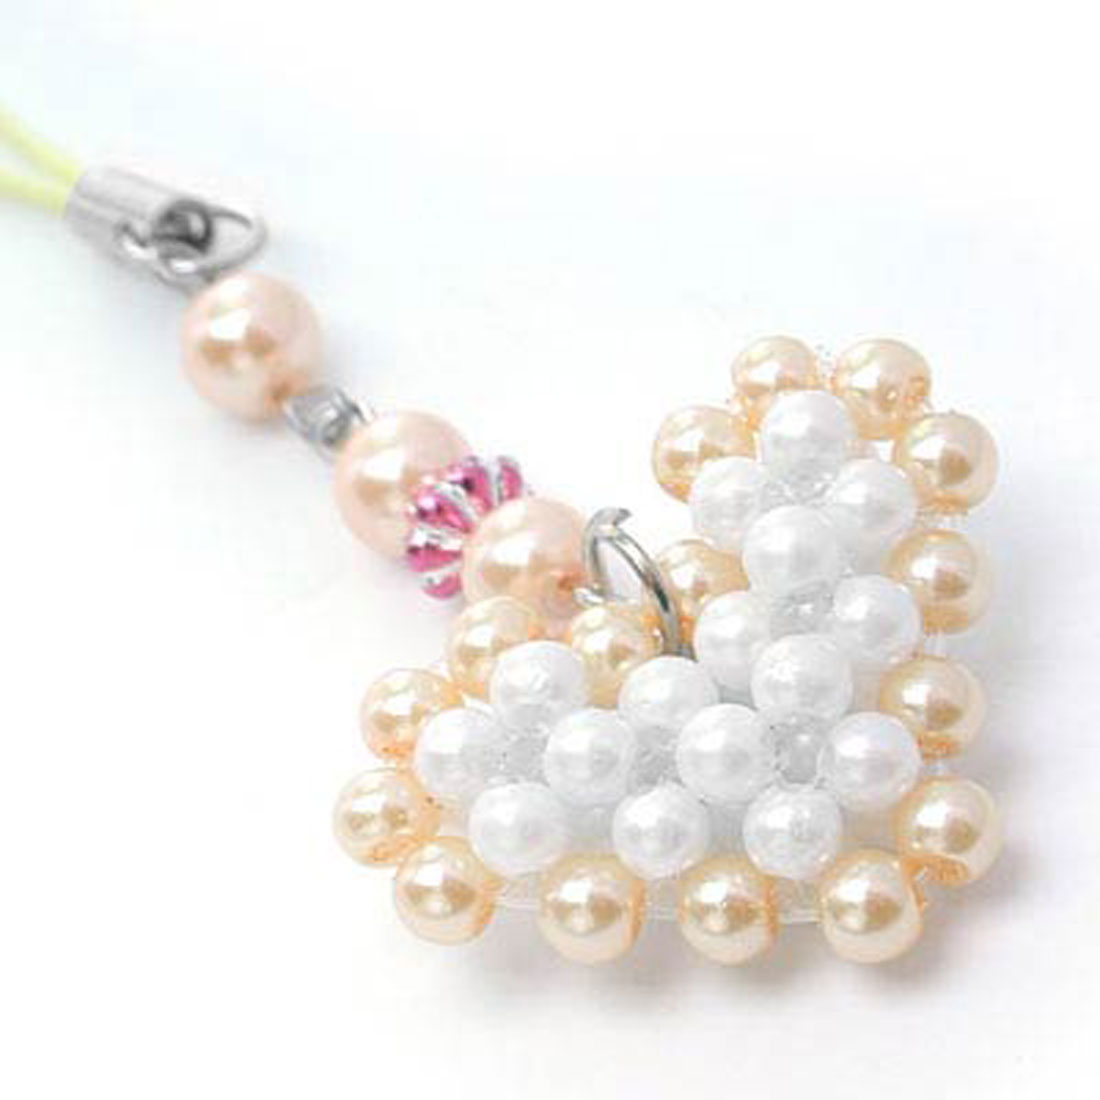 Fashion Jewelry Handmade Beads Phone String / Strap GOLDENen Heart